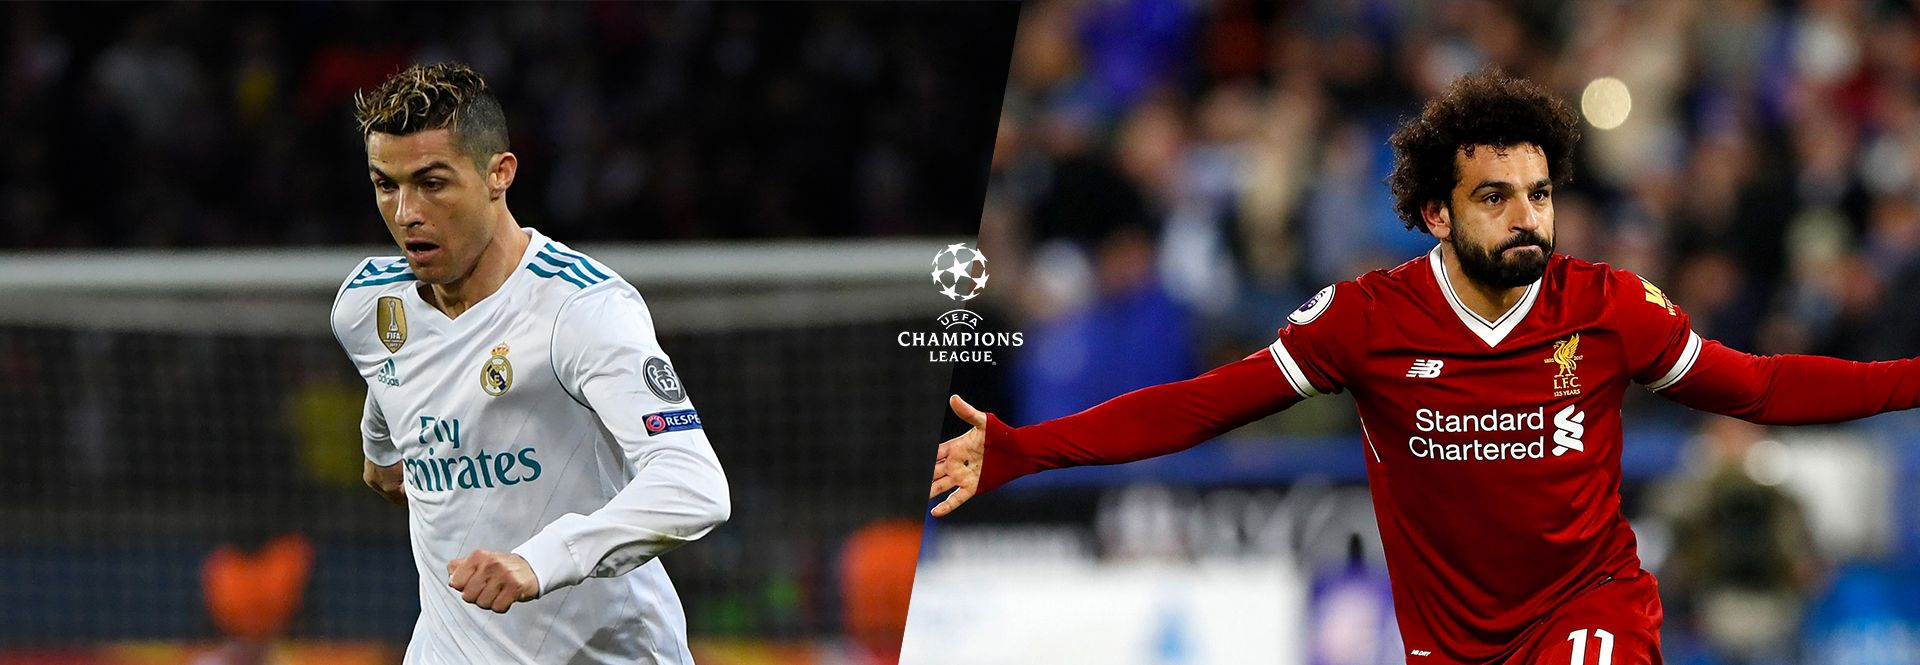 Finale de la Ligue des champions Real Madrid - Liverpool